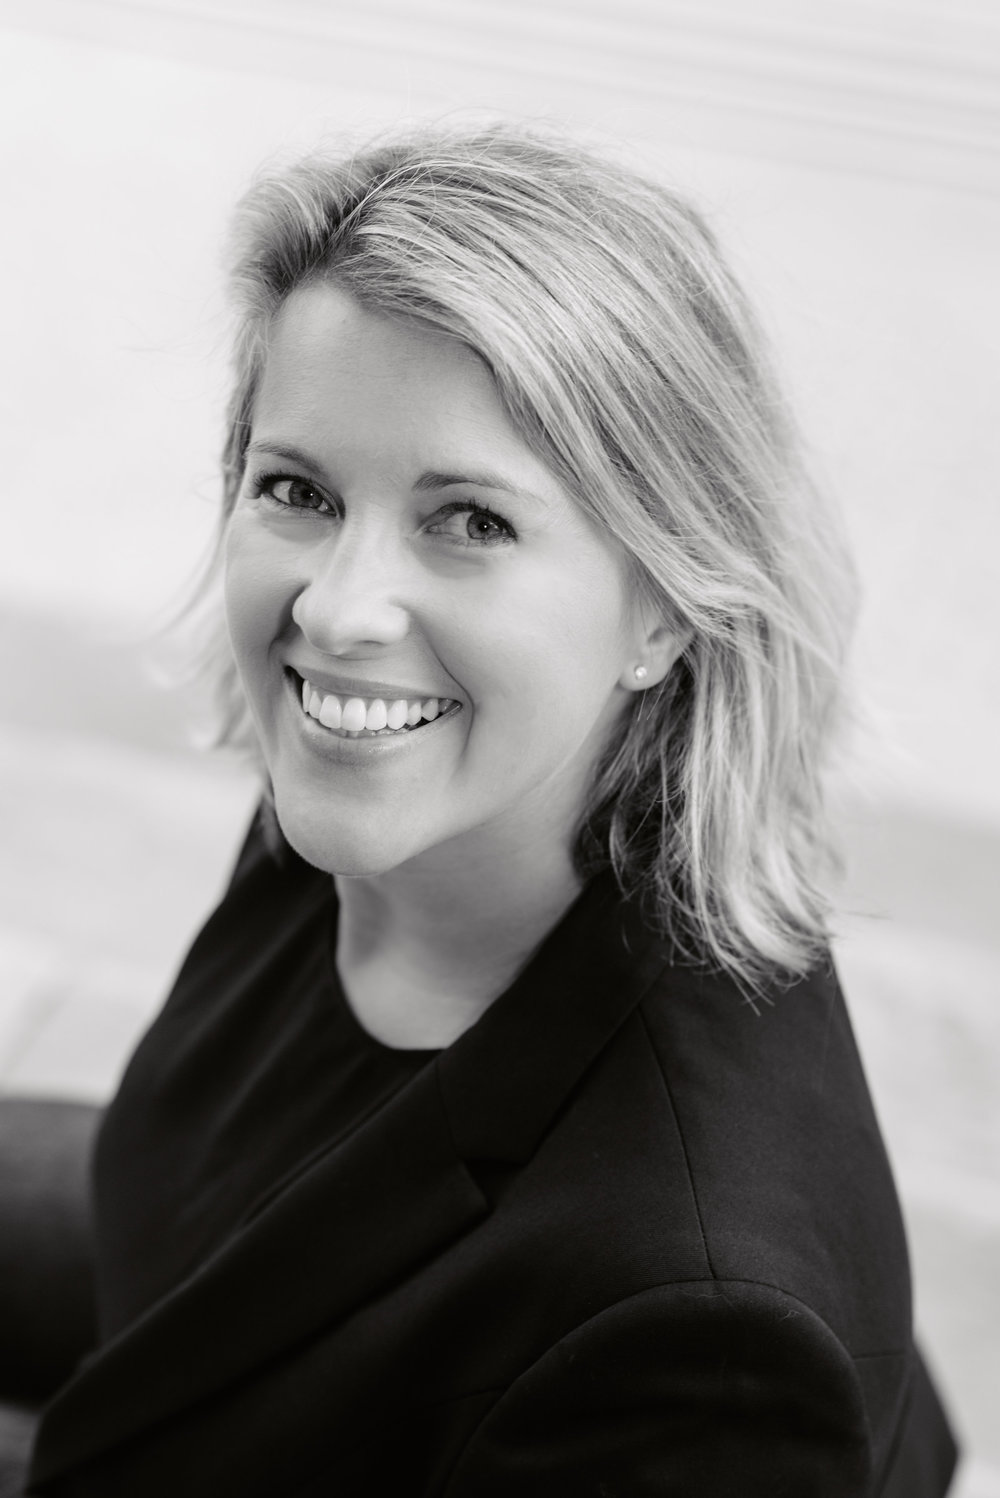 Alison Wines is the Managing Director of internal communications consultancy, Ursa Communications